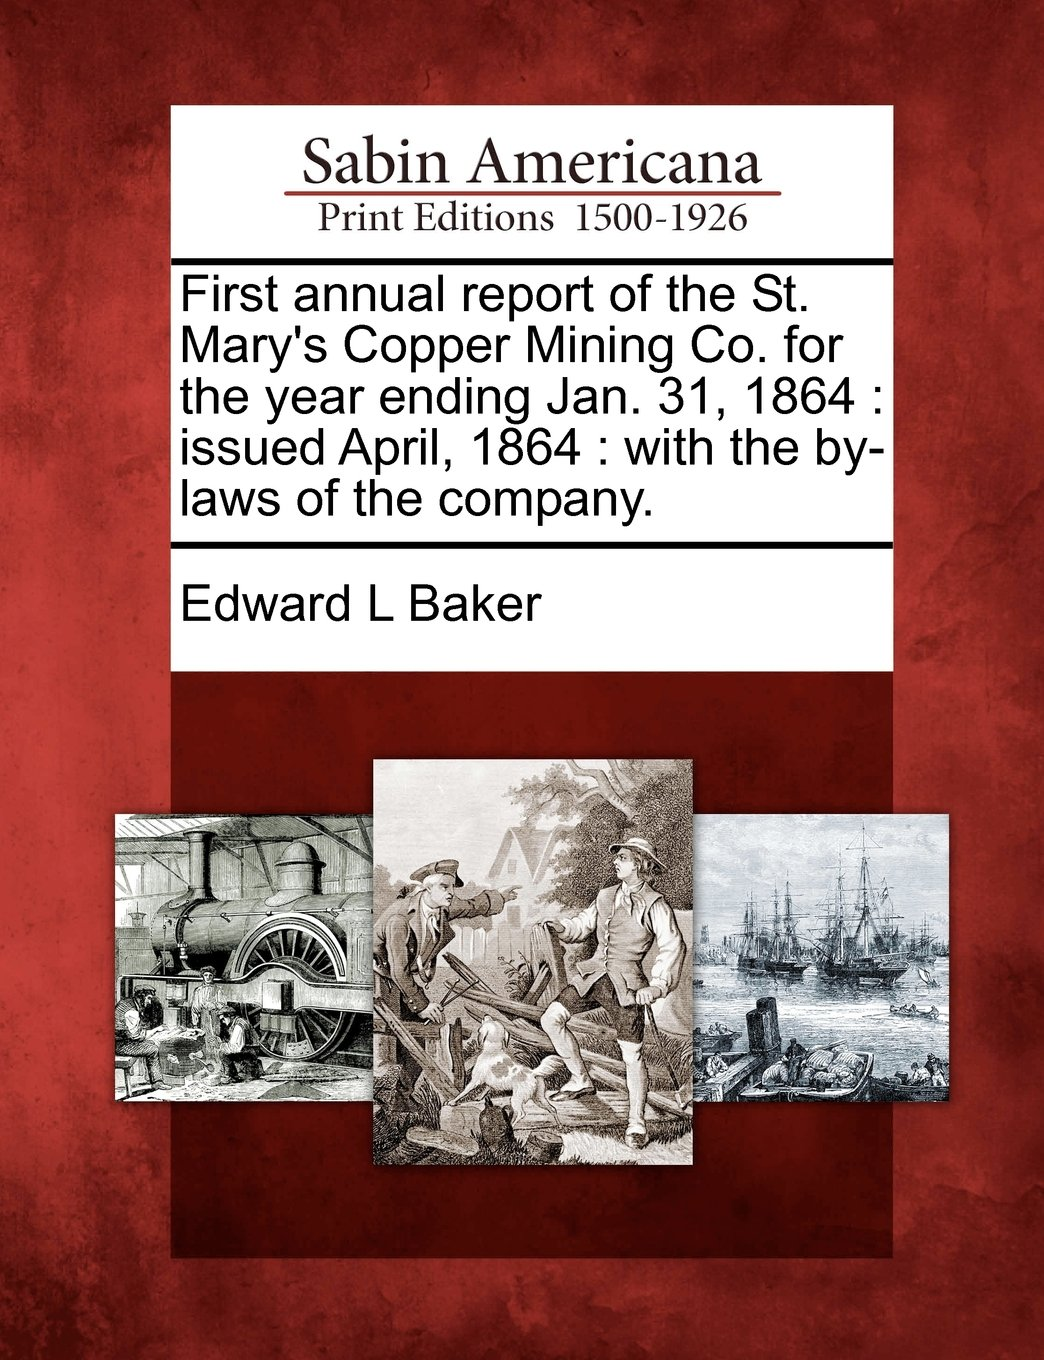 Download First annual report of the St. Mary's Copper Mining Co. for the year ending Jan. 31, 1864: issued April, 1864 : with the by-laws of the company. pdf epub